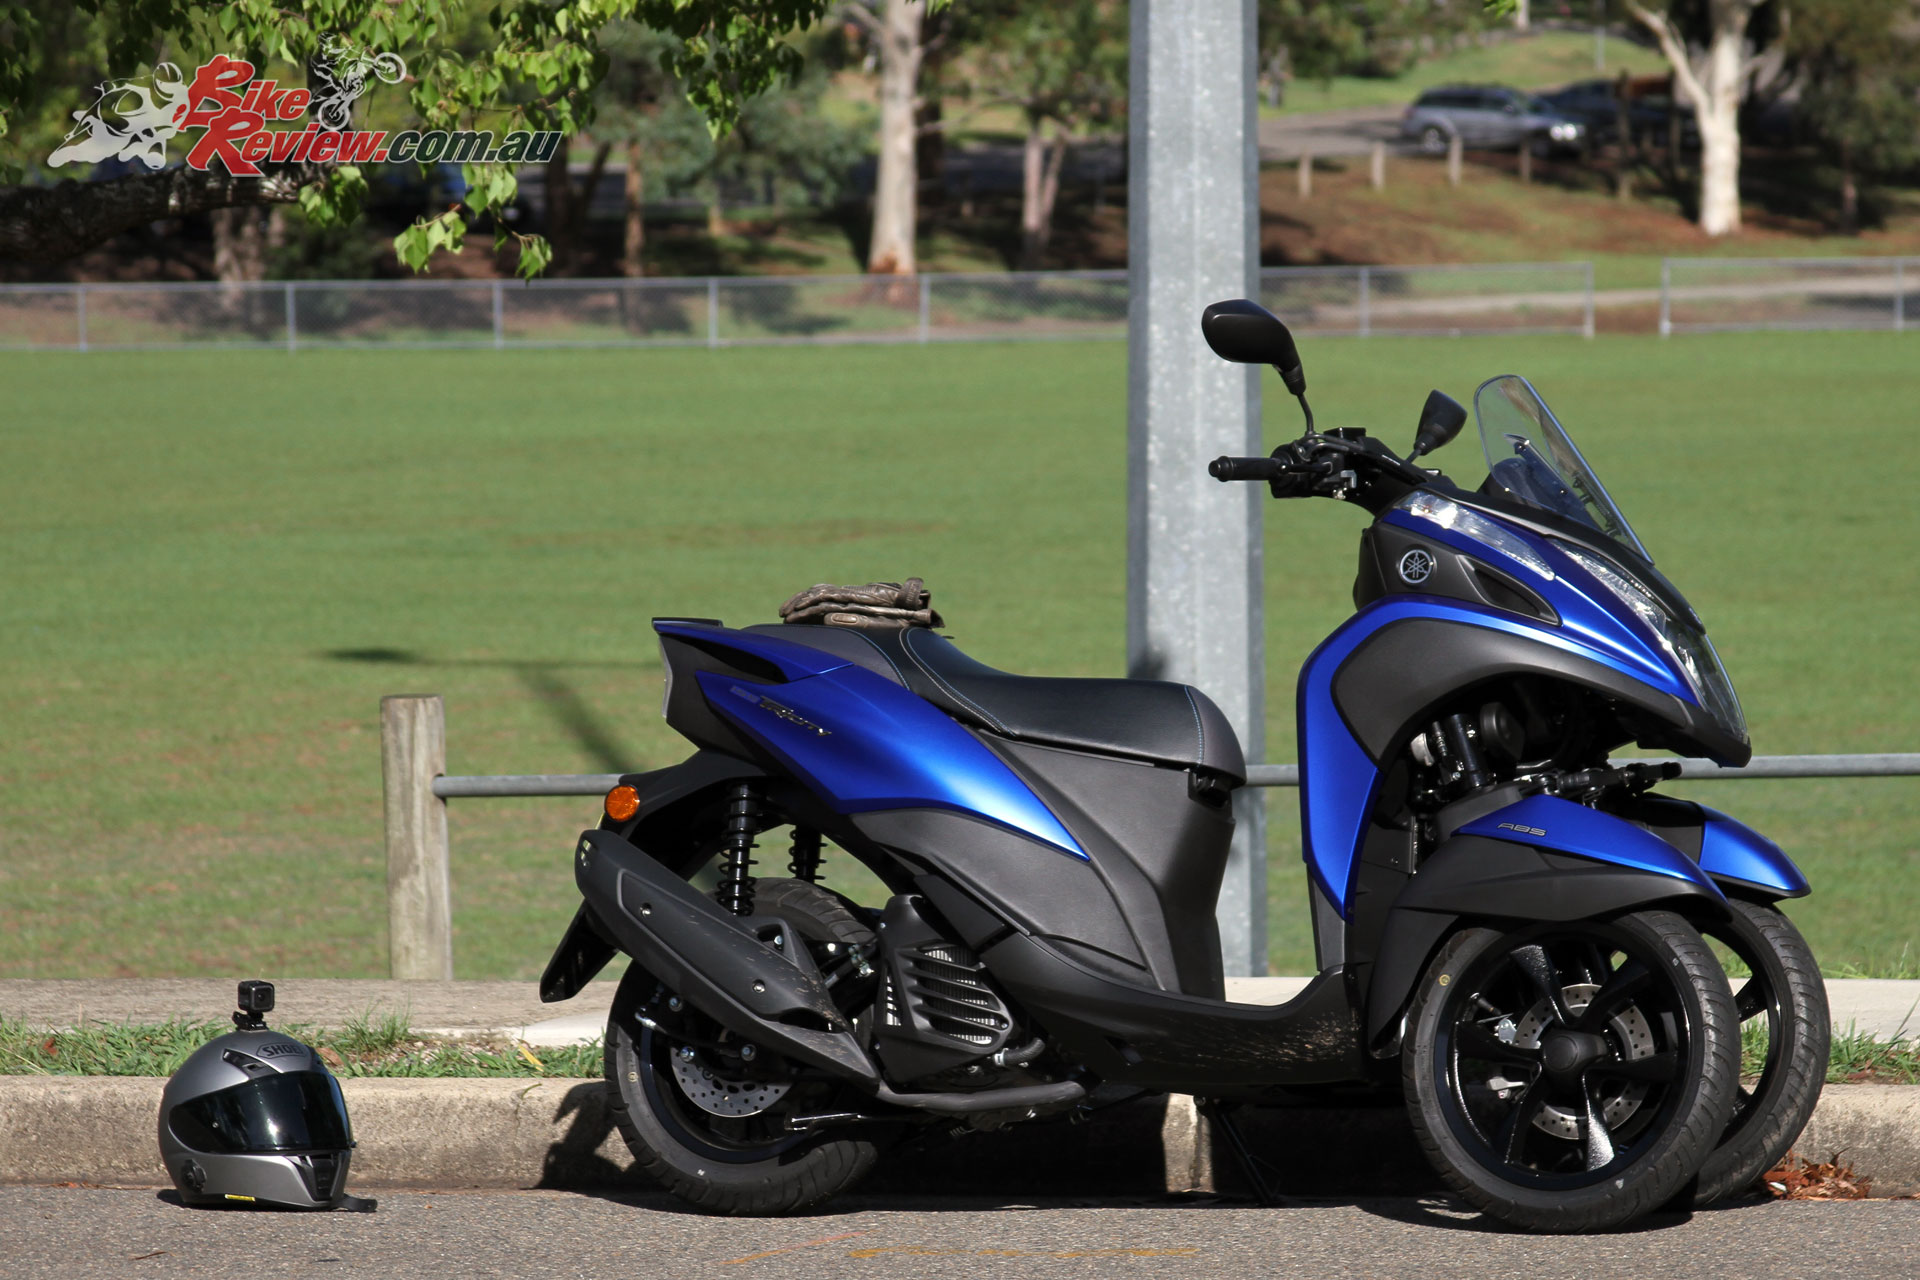 The Tricity 155 offers a good entry level option.